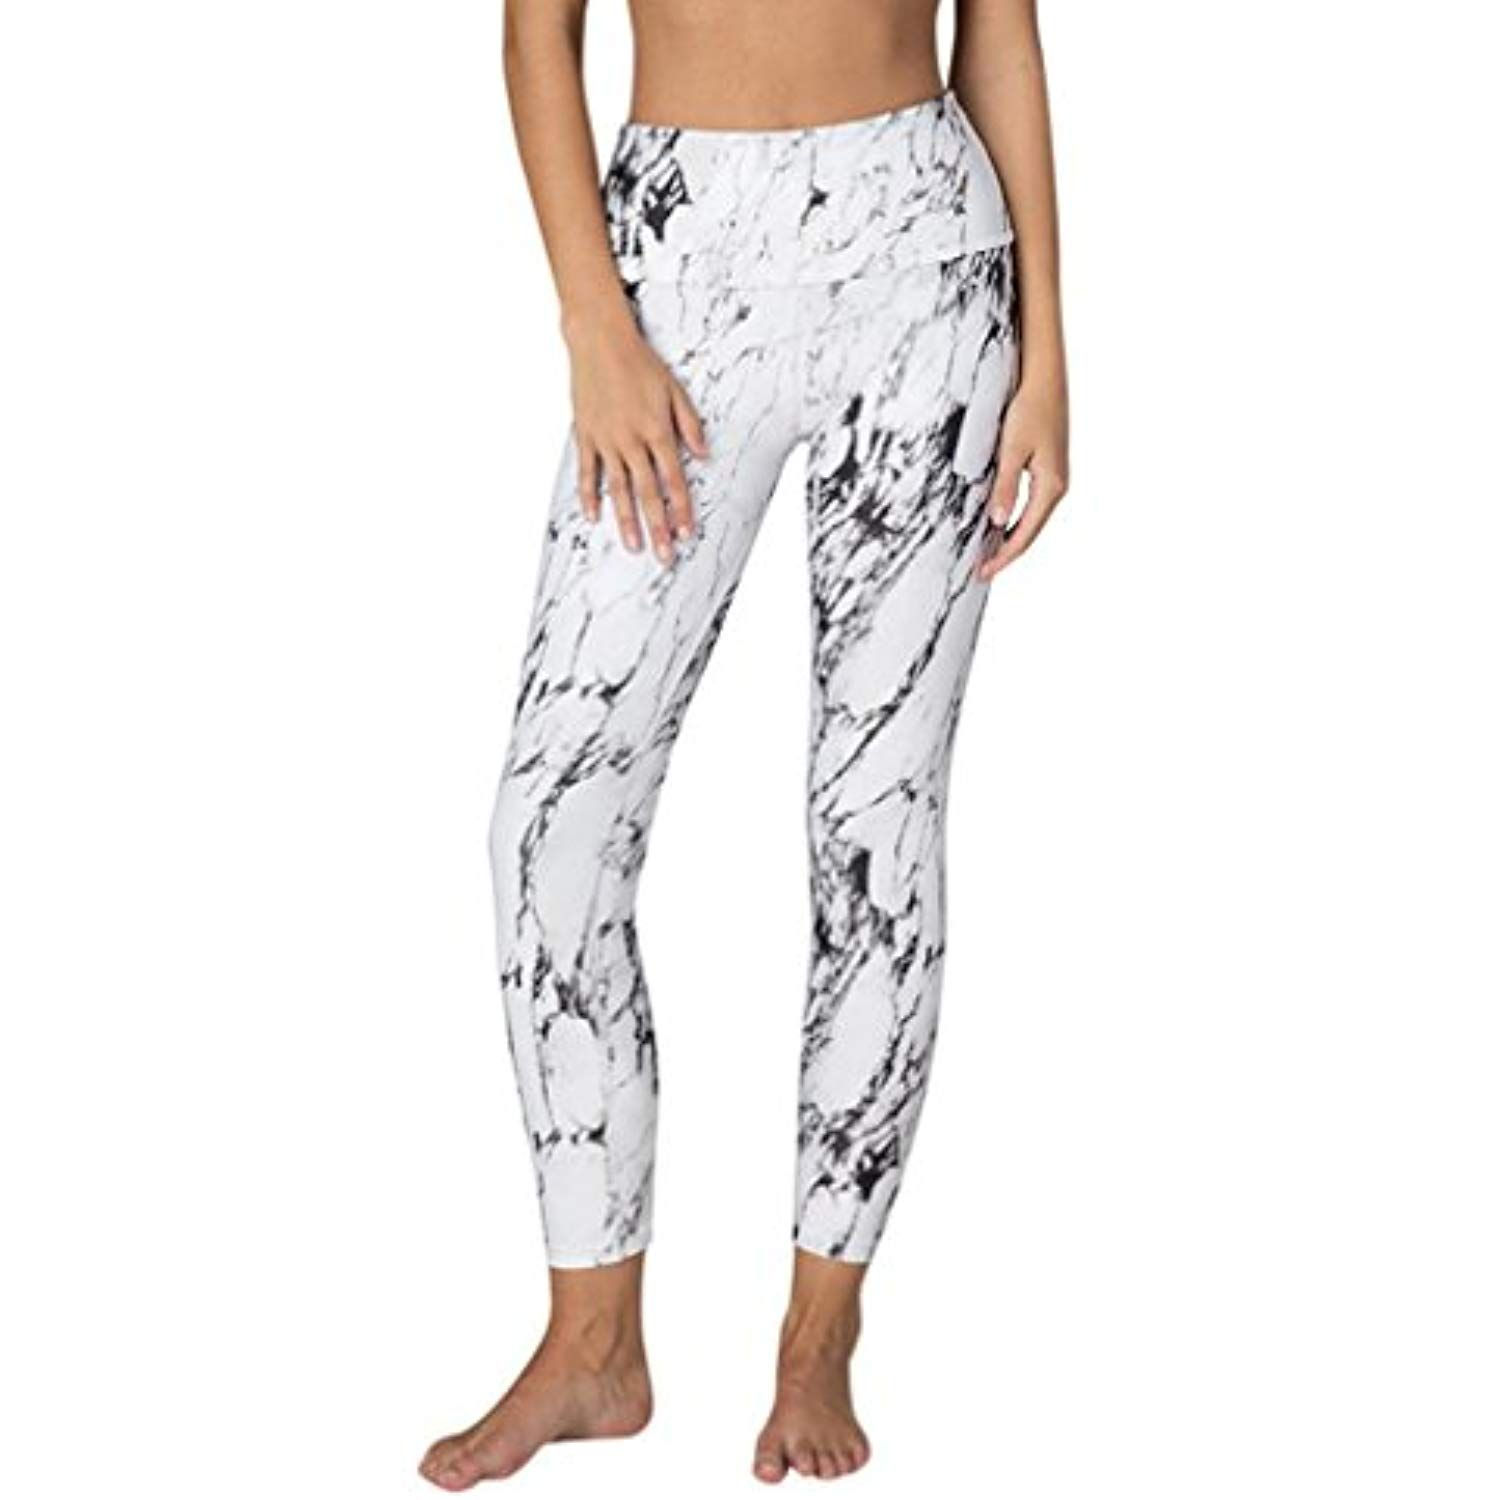 1966db137e1ff OCASHI Women Printed Leggings Sports Gym Yoga Workout High Waist Running  Pants Fitness Tights Elastic >>> Find out more about the great product at  the image ...